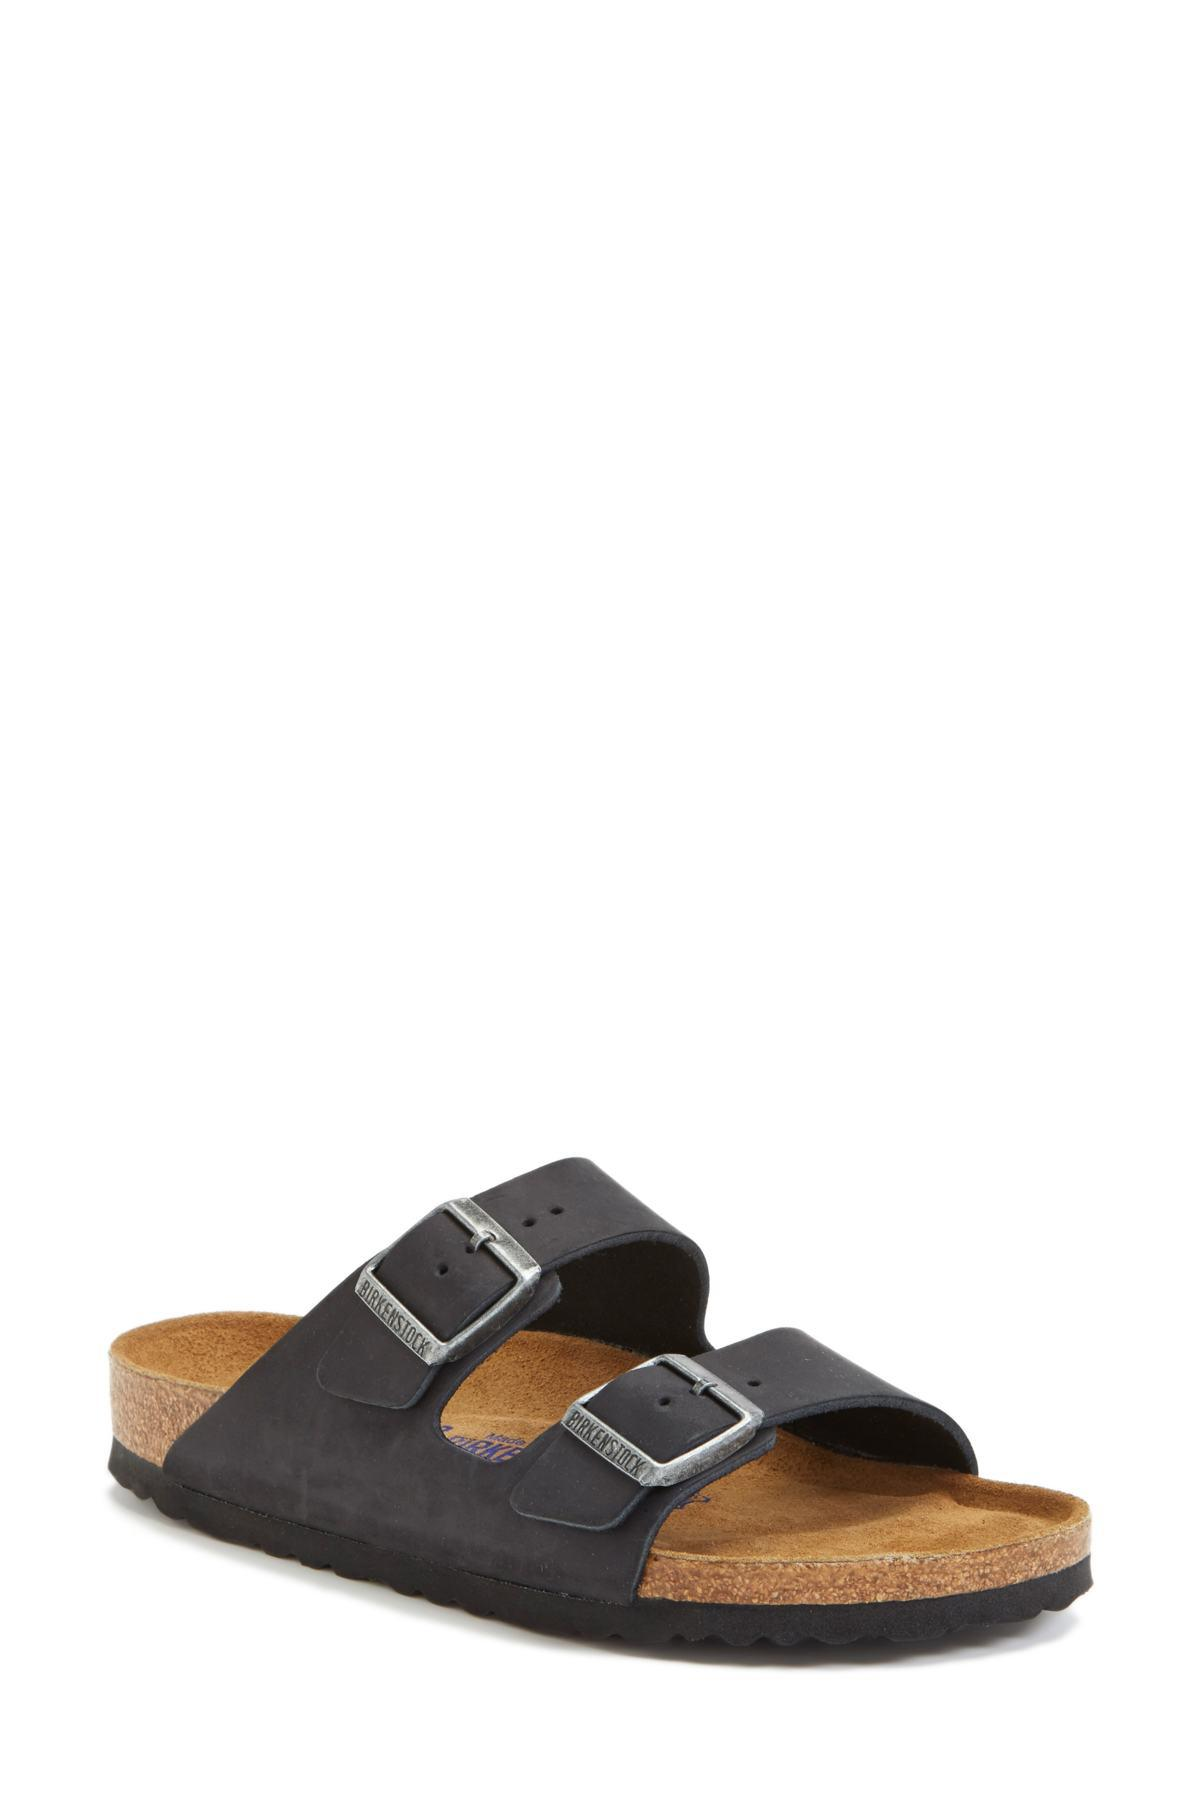 780ac066b4f Birkenstock - Gray Arizona Soft Footbed Sandal (women) (exclusive Color) -  Lyst. View fullscreen